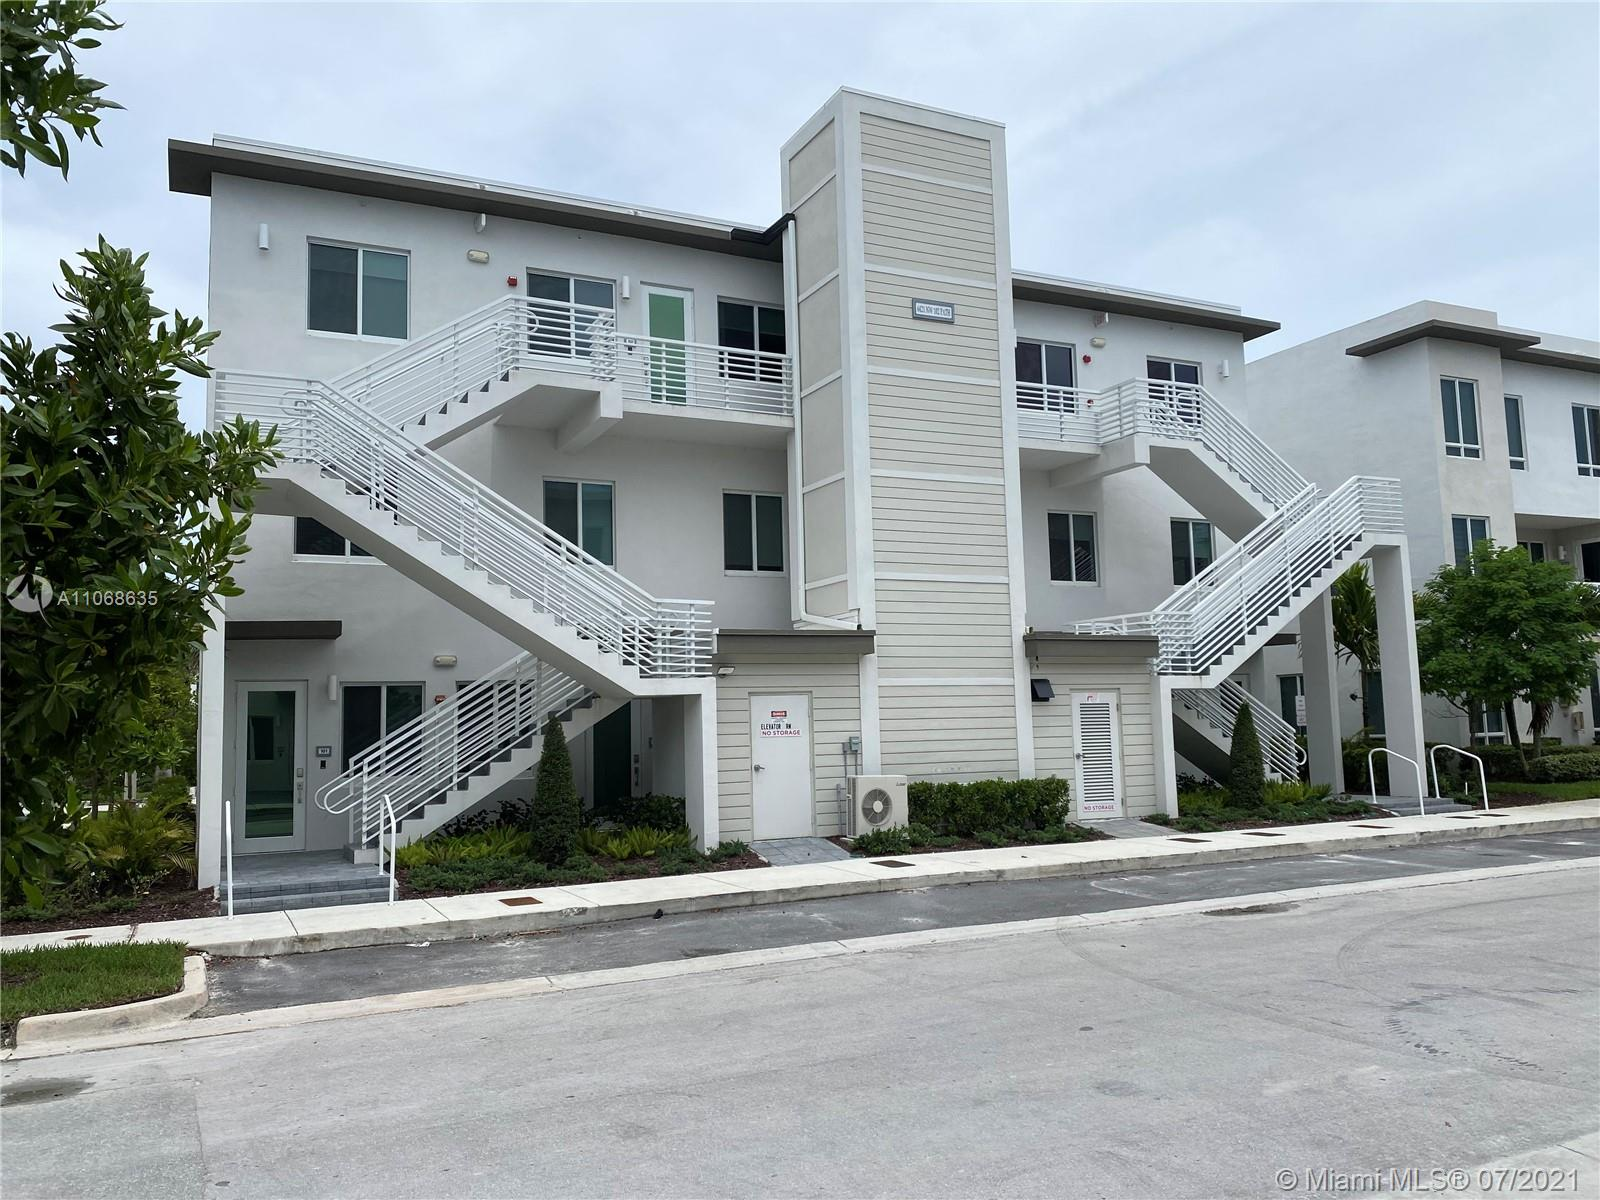 THIS BEAUTIFUL AND GREAT 2 STORY MODEL  CONDOMINIUM LOCATED IN DORAL. 3 BED & 2 BATH. THIS CONDO FEATURES A GREAT ROOM THAT OPENS UP TO AN AMAZING KITCHEN THAT TAKES CONTEMPORARY TO A WHOLE NEW LEVEL. THE KITCHEN INCLUDES STAINLESS STEEL APPLIANCES, BUILT-IN WALL MICROWAVE AND OVEN. A DELUXE UNDER THE COUNTER WINE COOLER, WHITE QUARTZ COUNTERTOPS, THE MASTER SUITE INCLUDES WALK IN CLOSET AND A MASTER BATH DUAL FLOATING SINKS, VANITY AND GLASS ENCLOSED SHOWER. CERAMIC TILES